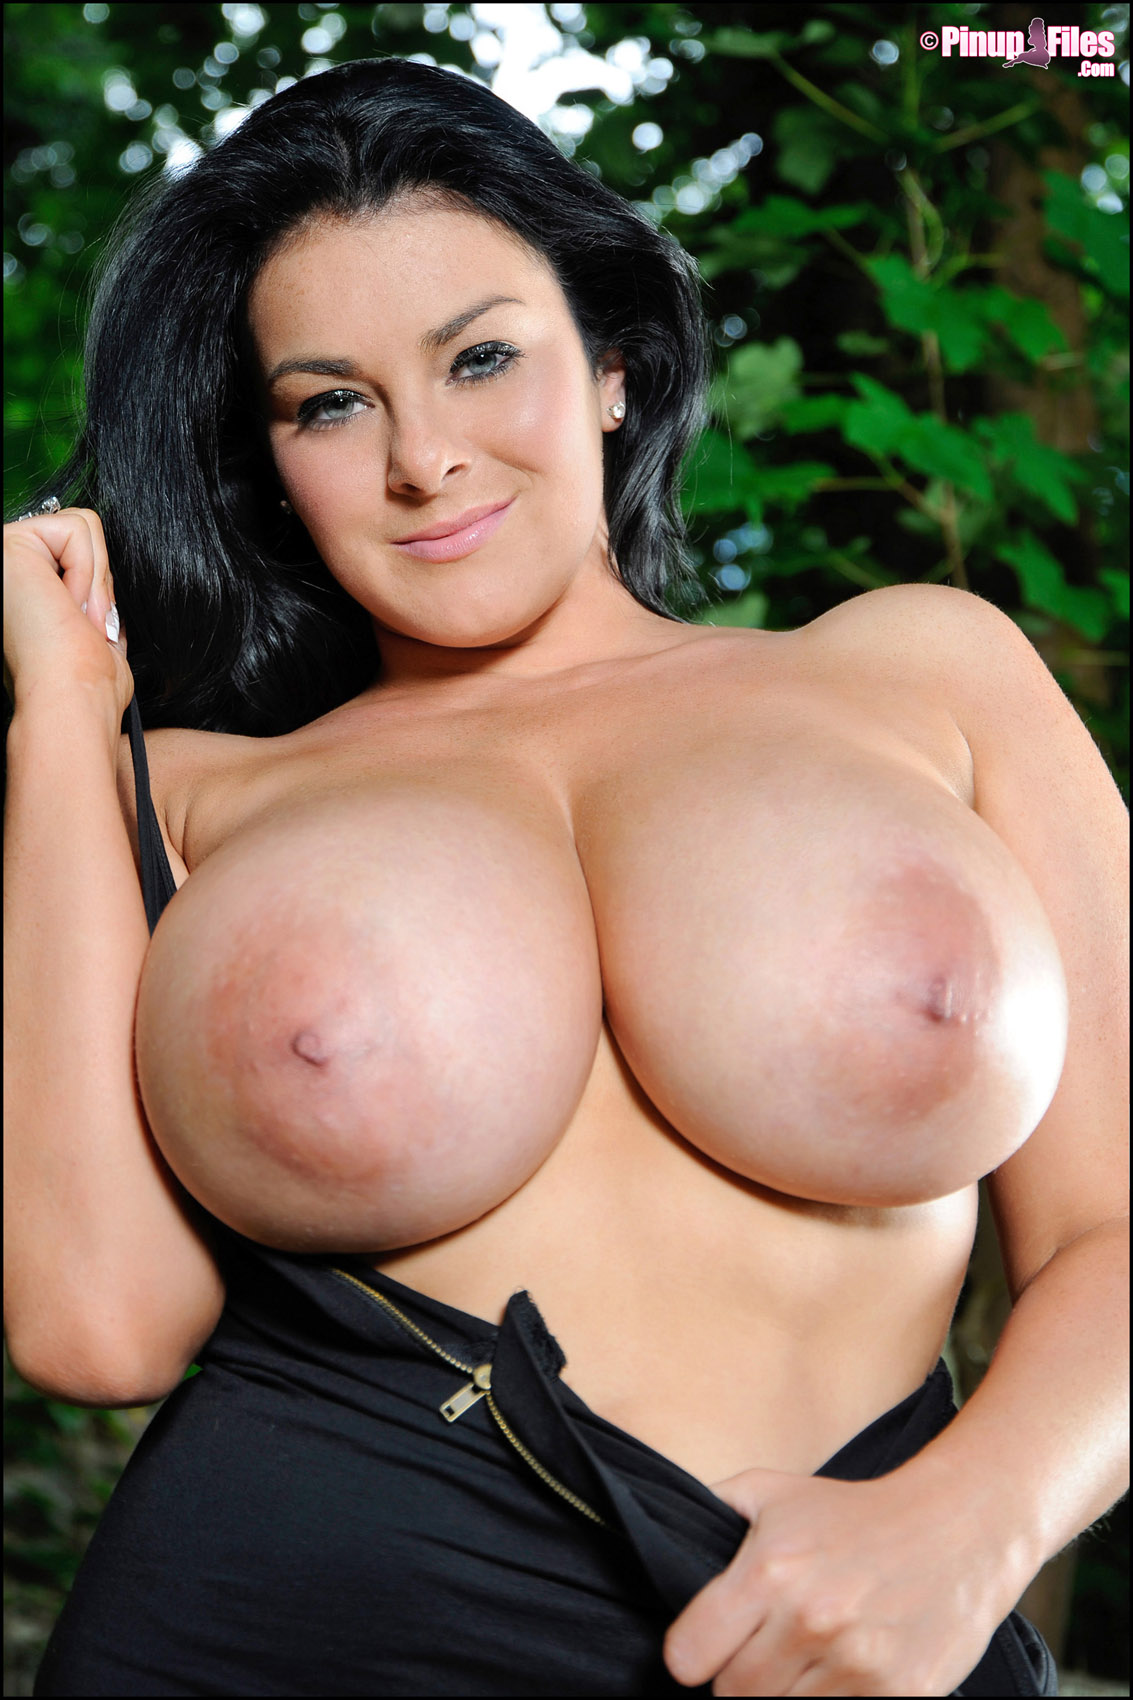 Karla james big boobs